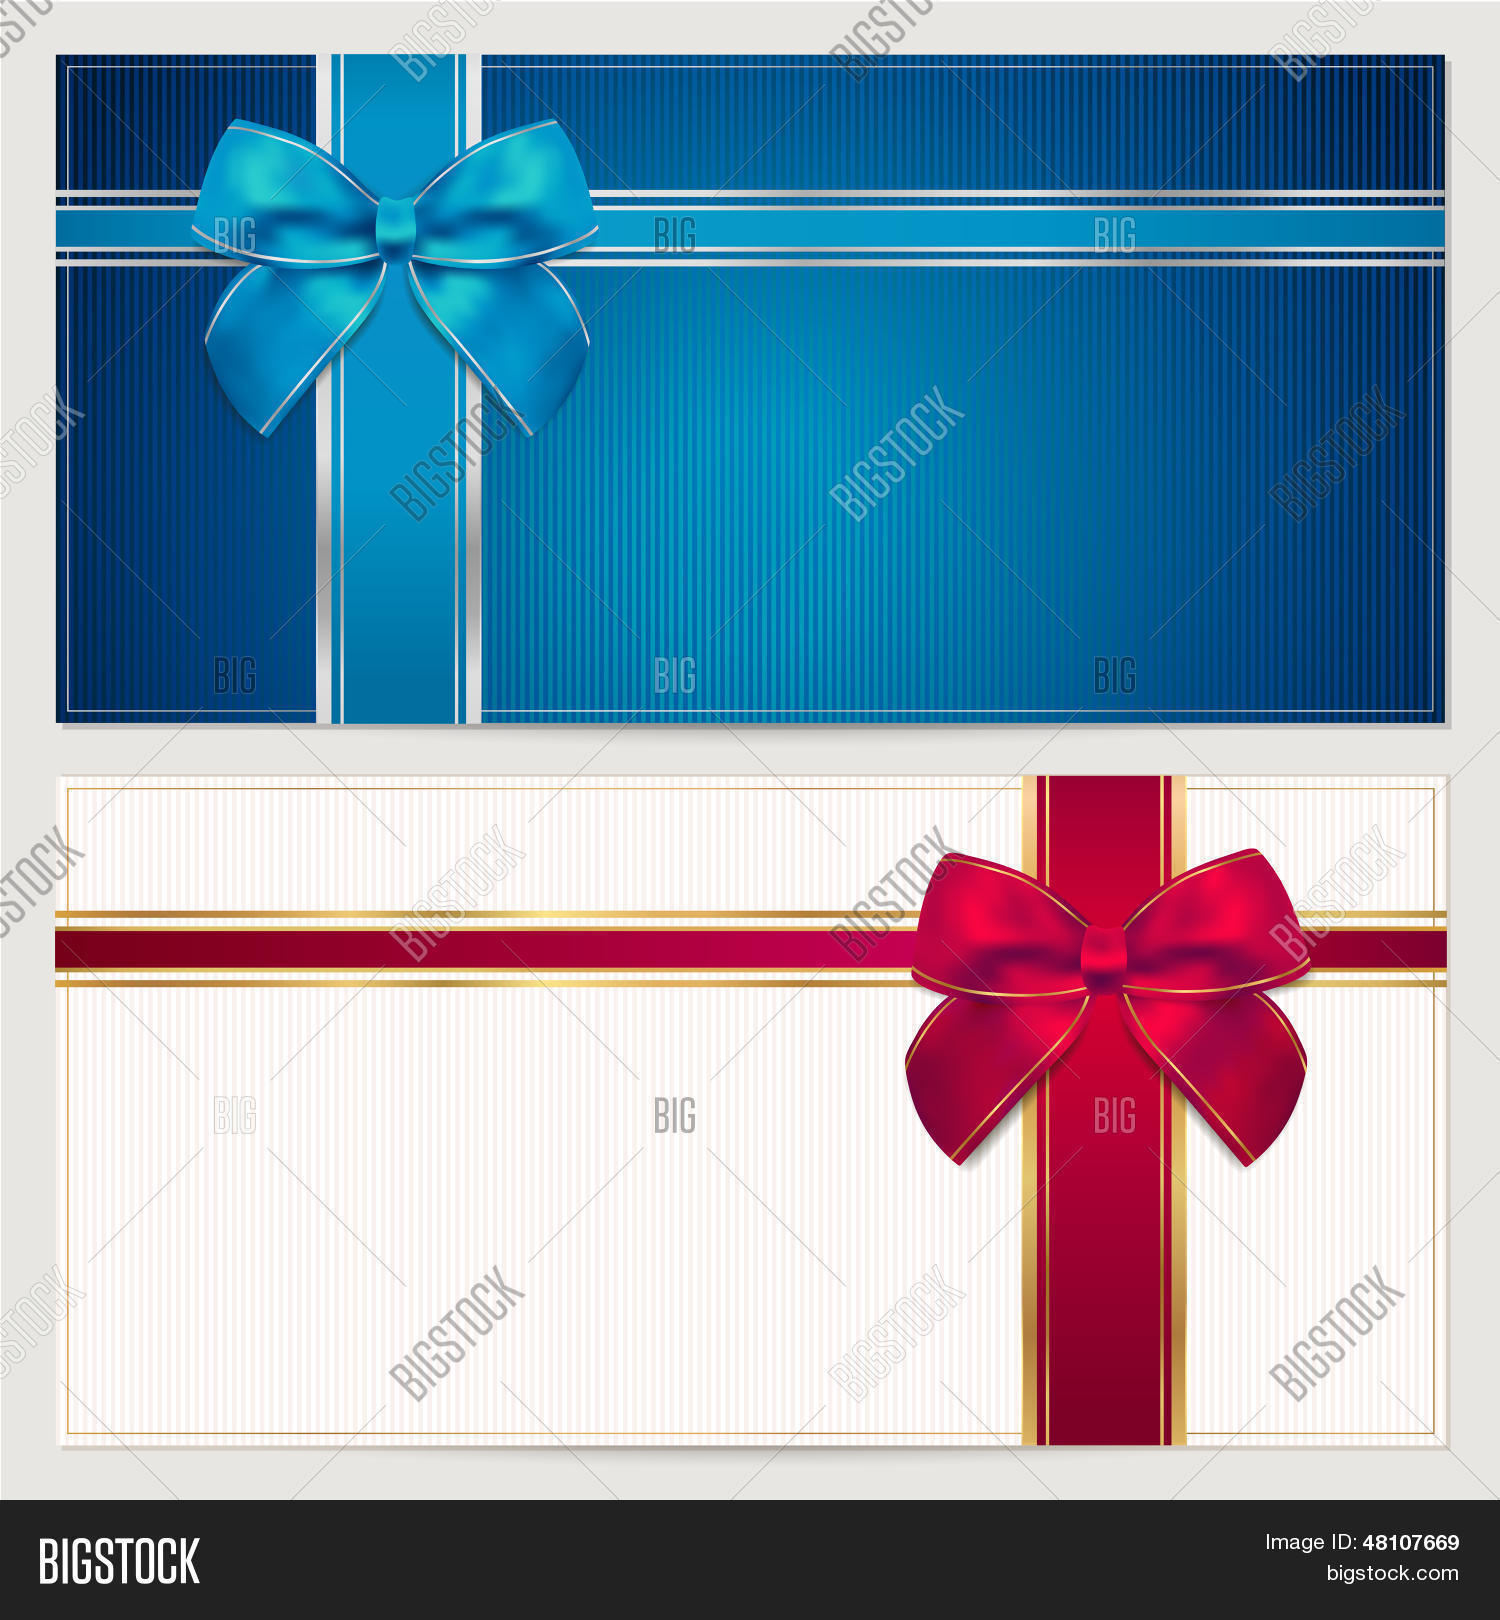 Gift voucher coupon template vector photo bigstock gift voucher coupon template with blue and red bow ribbons yadclub Image collections